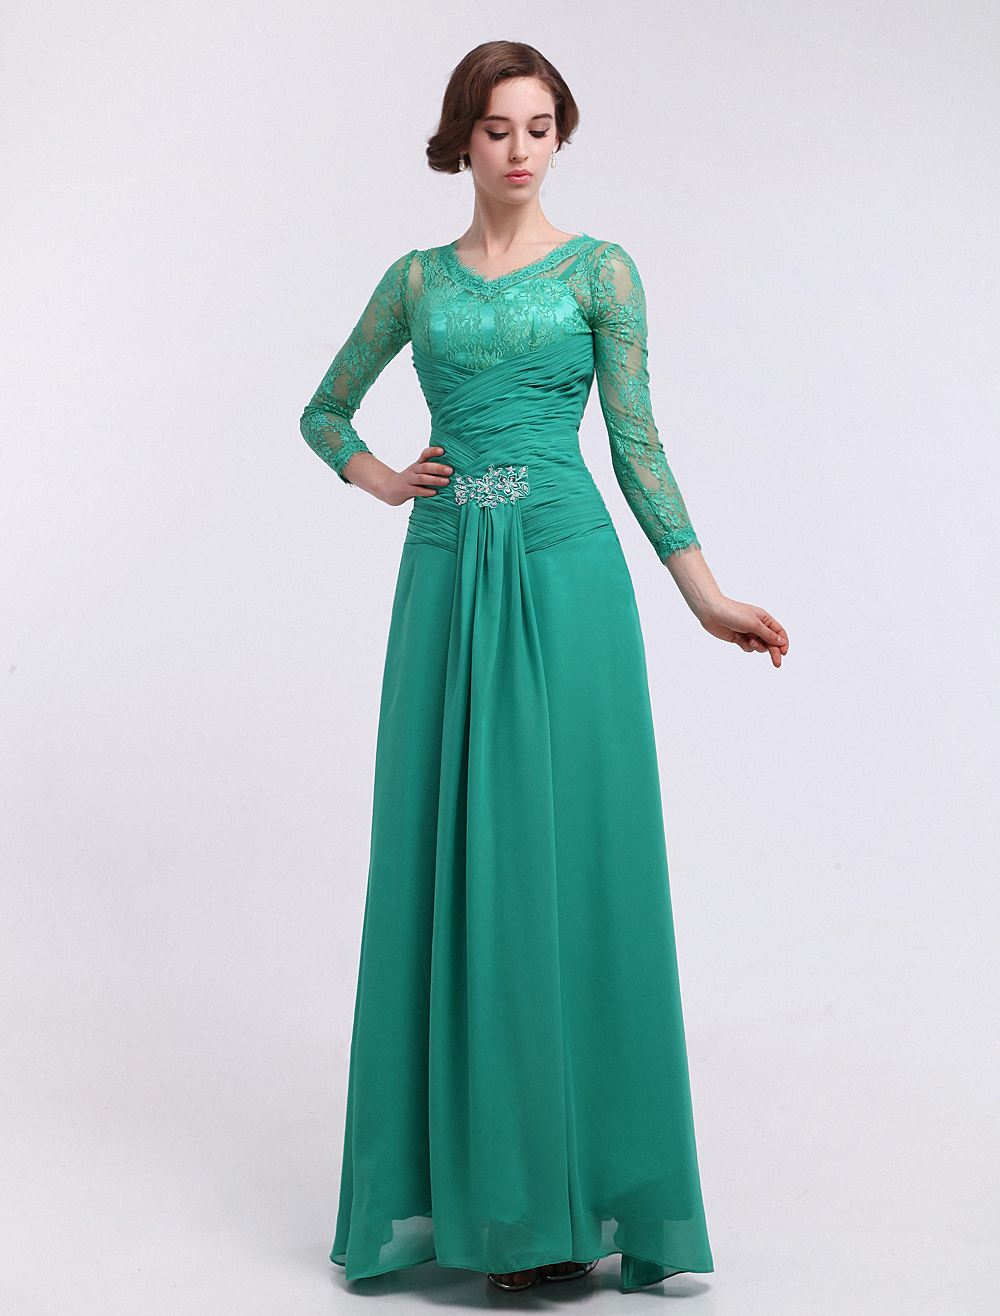 Chiffon Evening Dress Blue Green Ruched Bridal Mother Dress Lace Beaded V Neck Long Sleeve A Line Floor Length Party Dress Milanoo (Wedding) photo